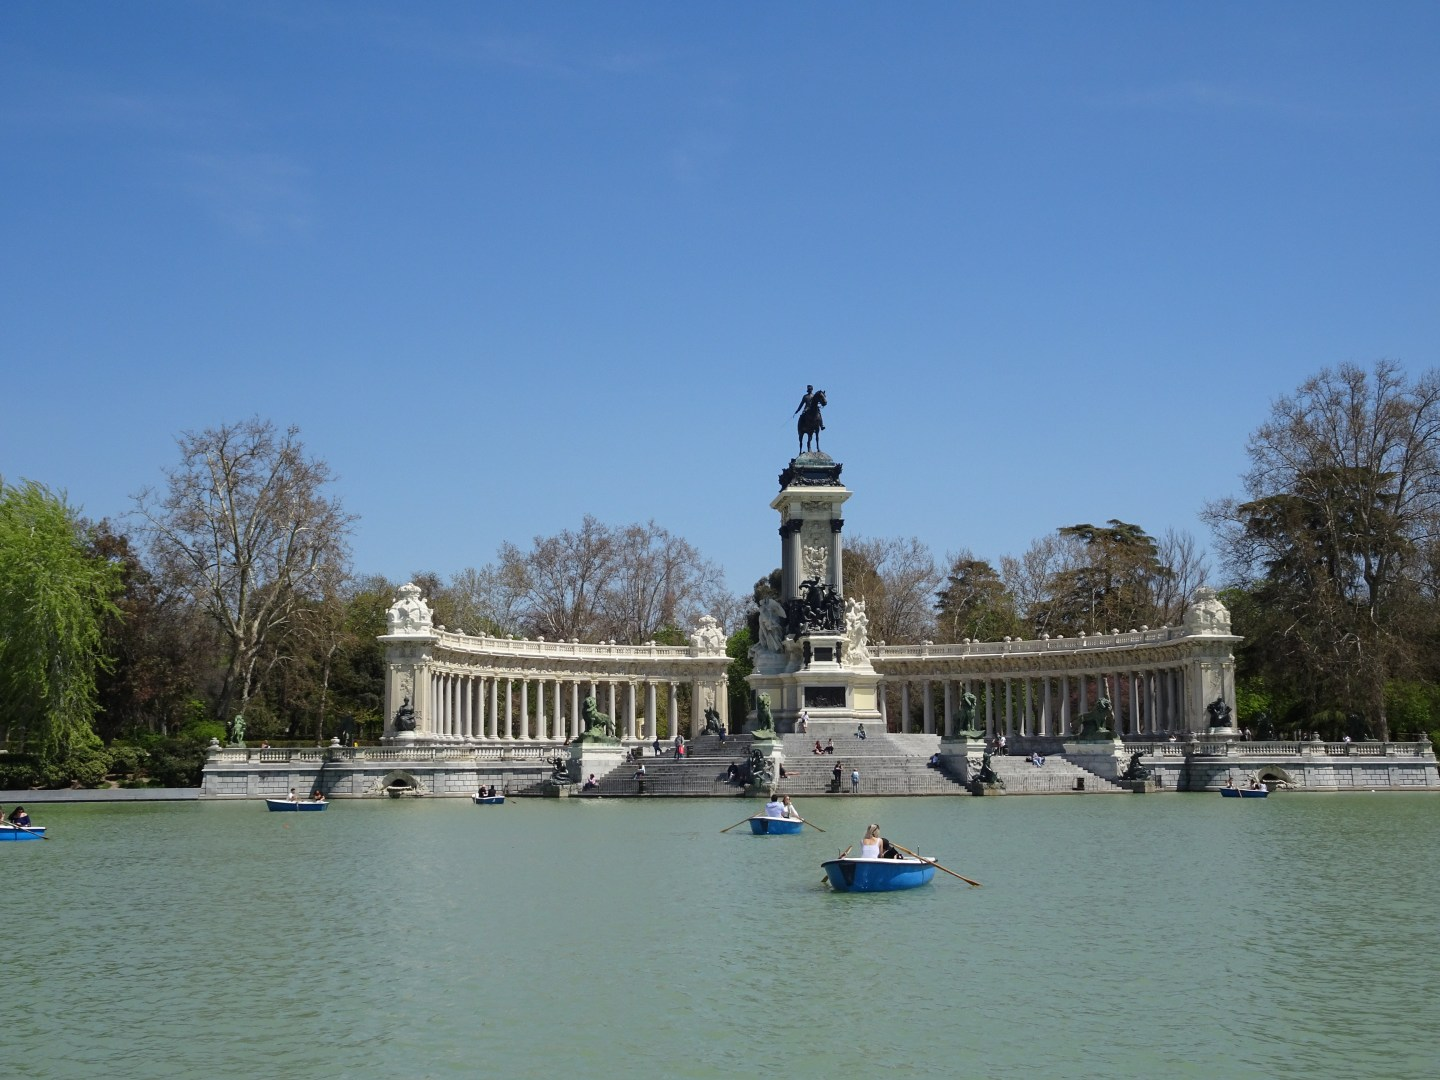 Madrid Retiro Boating Lake